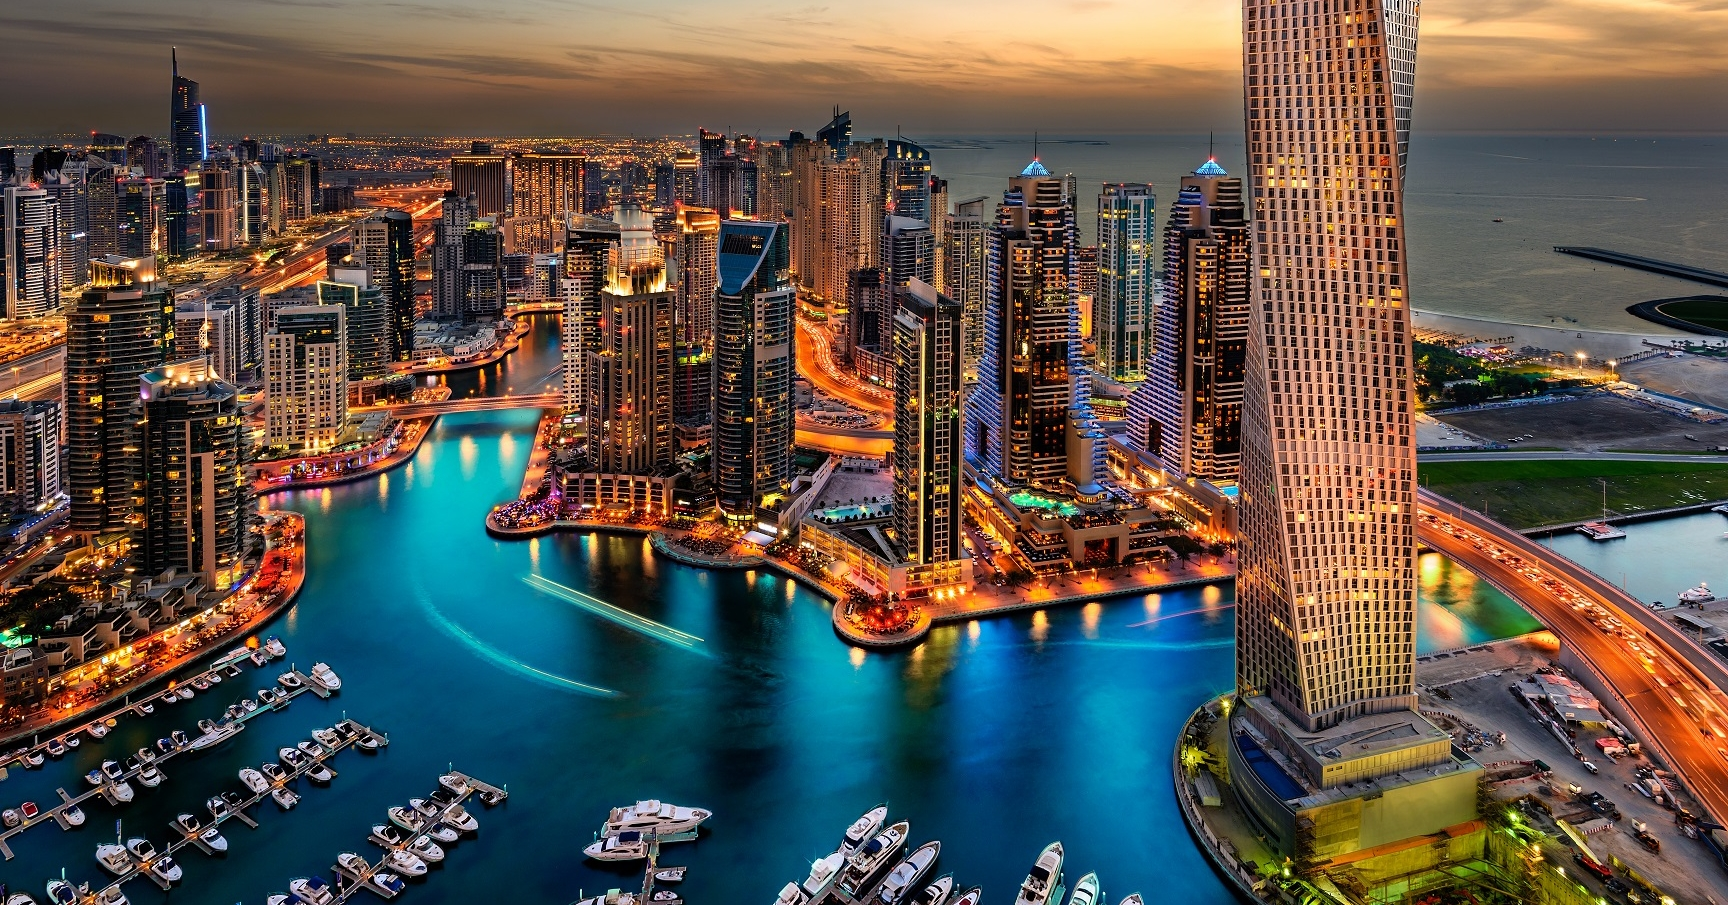 16 Amazing Facts About Dubai